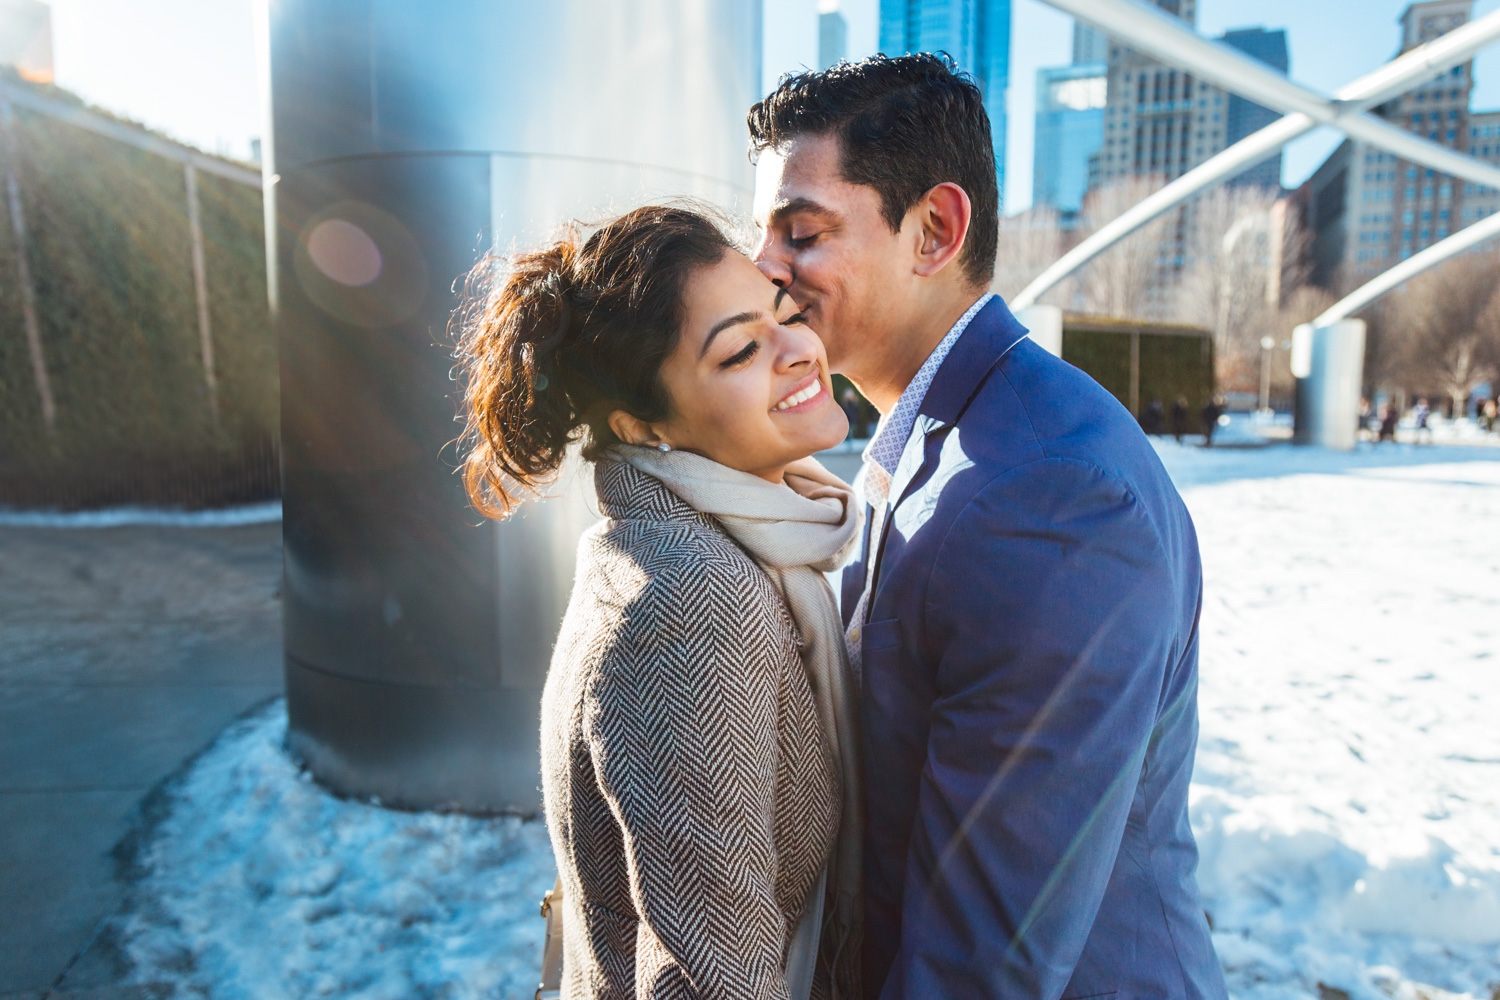 Bokeh-Studios_Anil_Chicago_Proposal_Engagement_Millennium-Park_Bean_Cloud-Gate_13